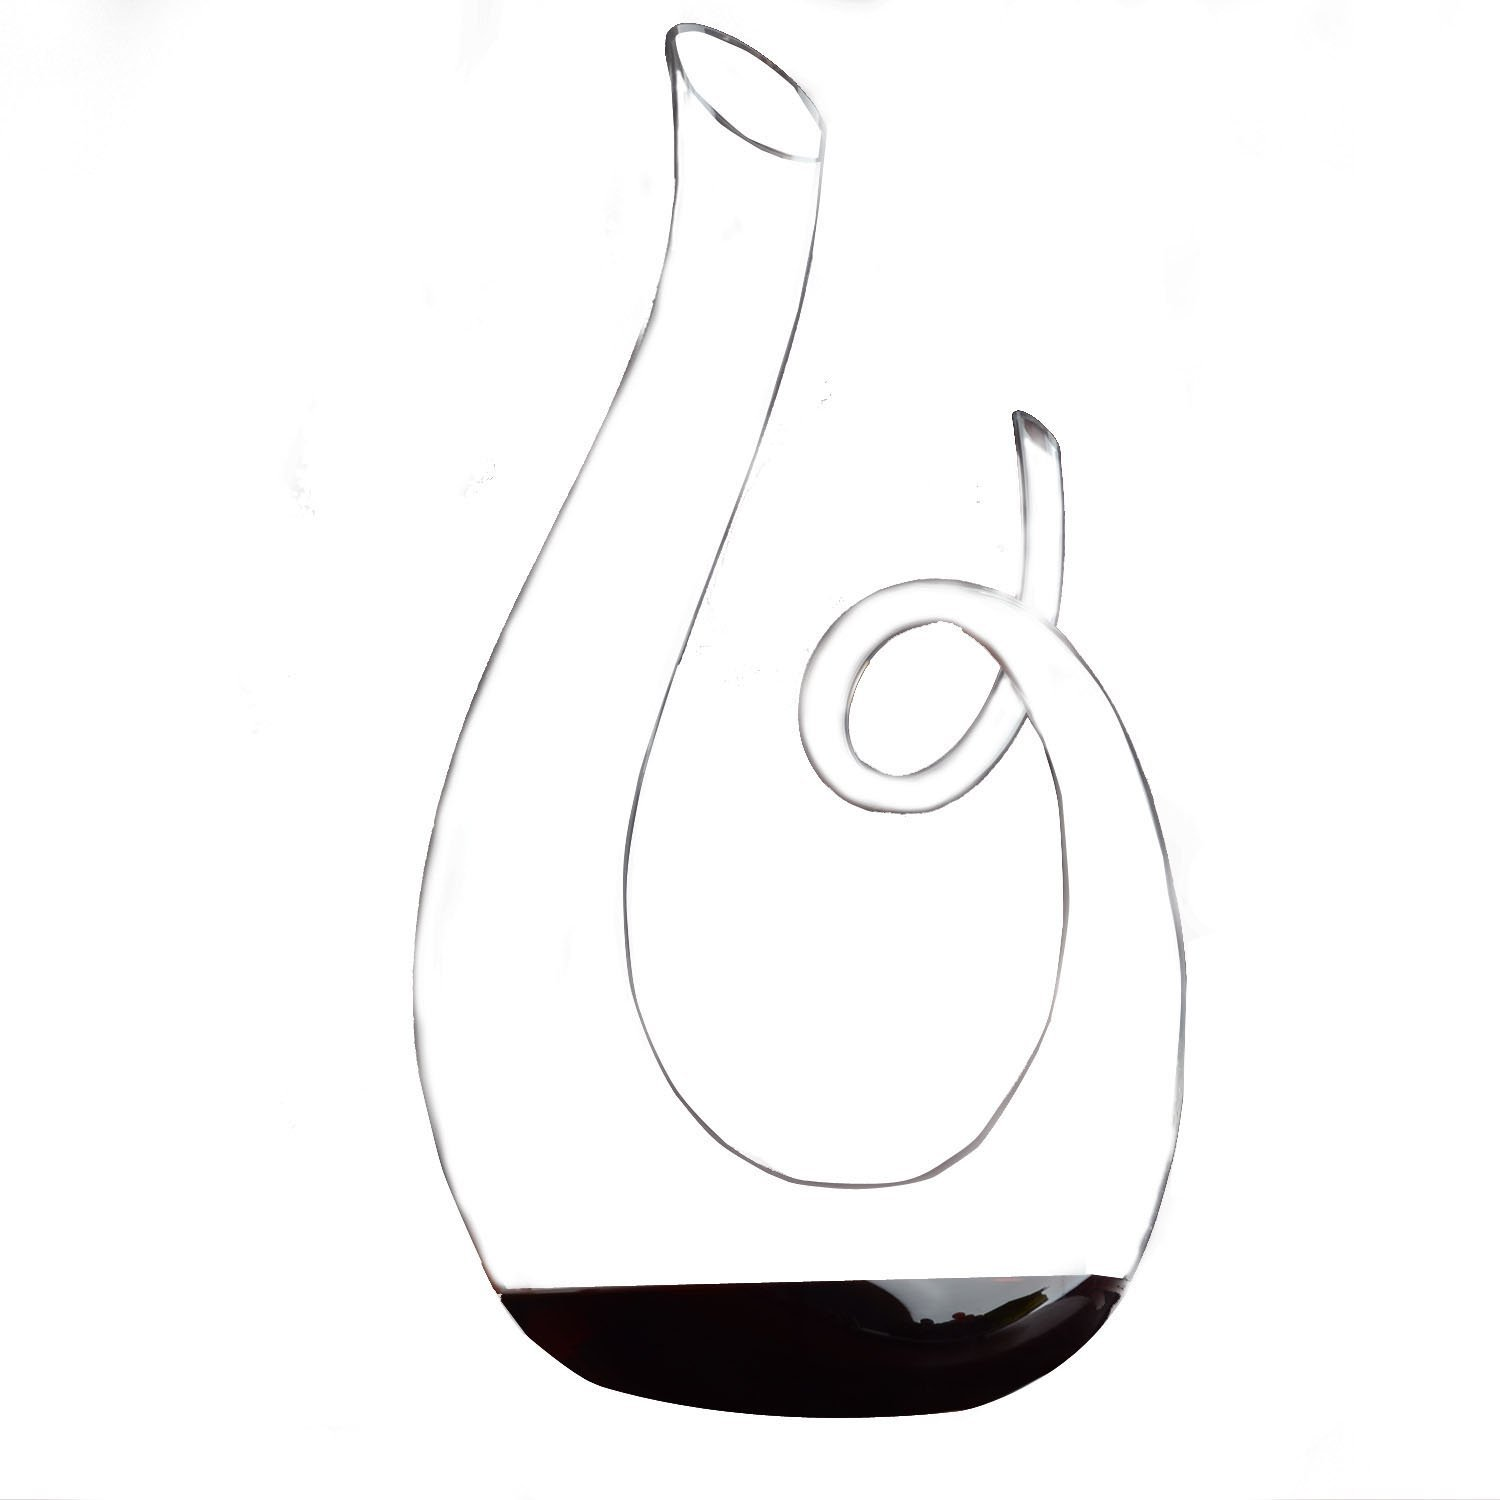 Hanzeek Music Notation Shaped 53 Ounce Wine Decanter – Lead-free Crystal in Unique, Elegant Shape